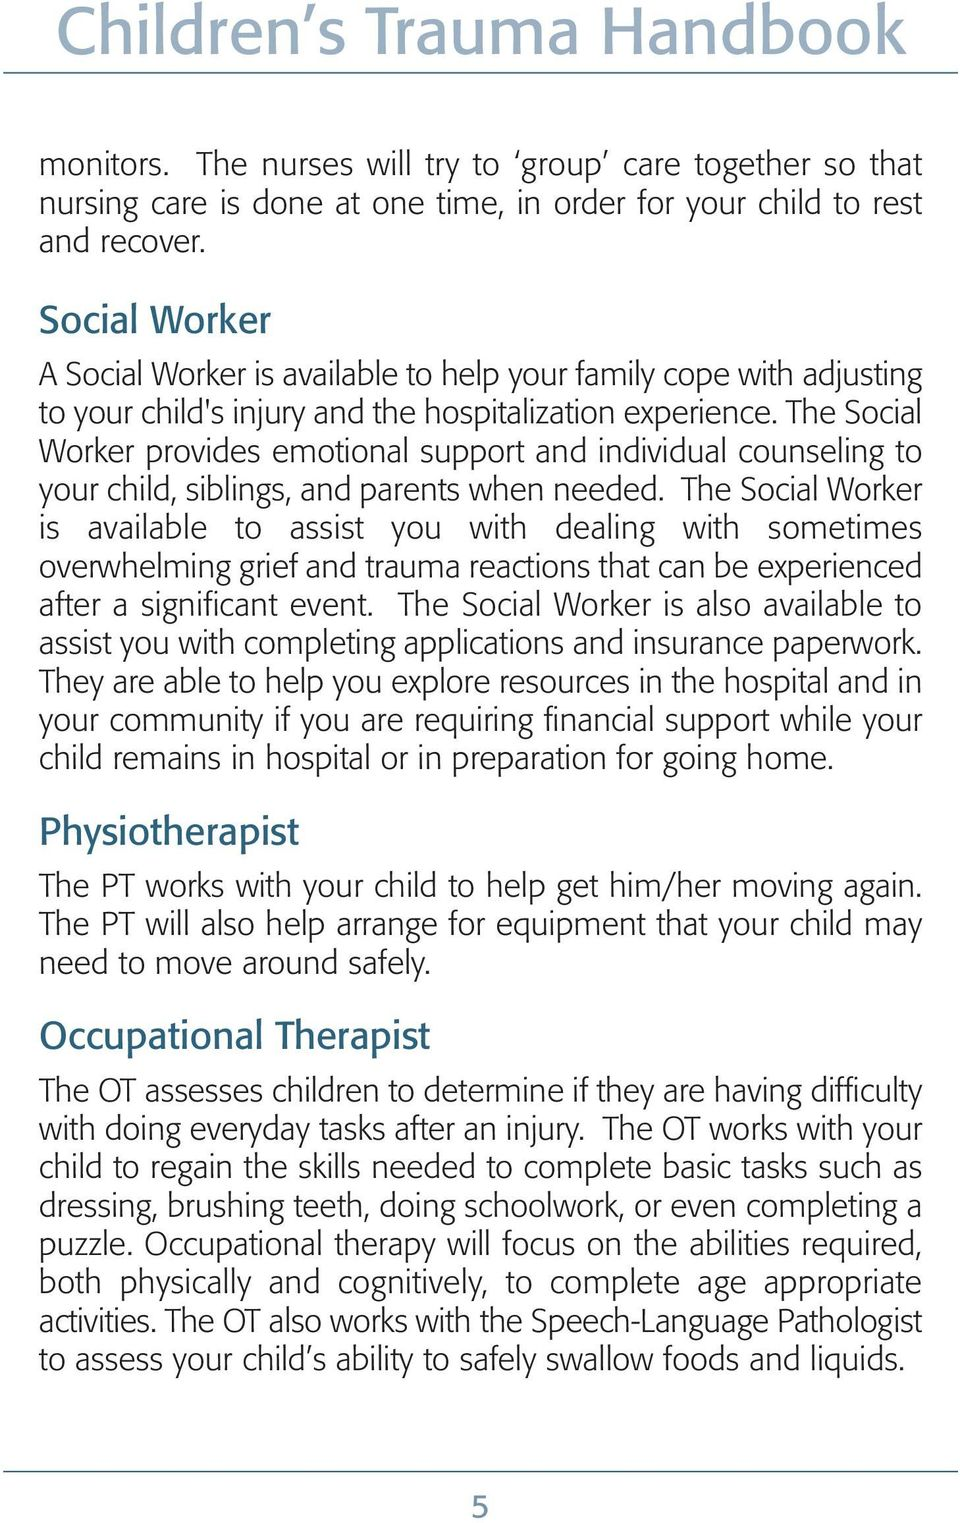 The Social Worker provides emotional support and individual counseling to your child, siblings, and parents when needed.